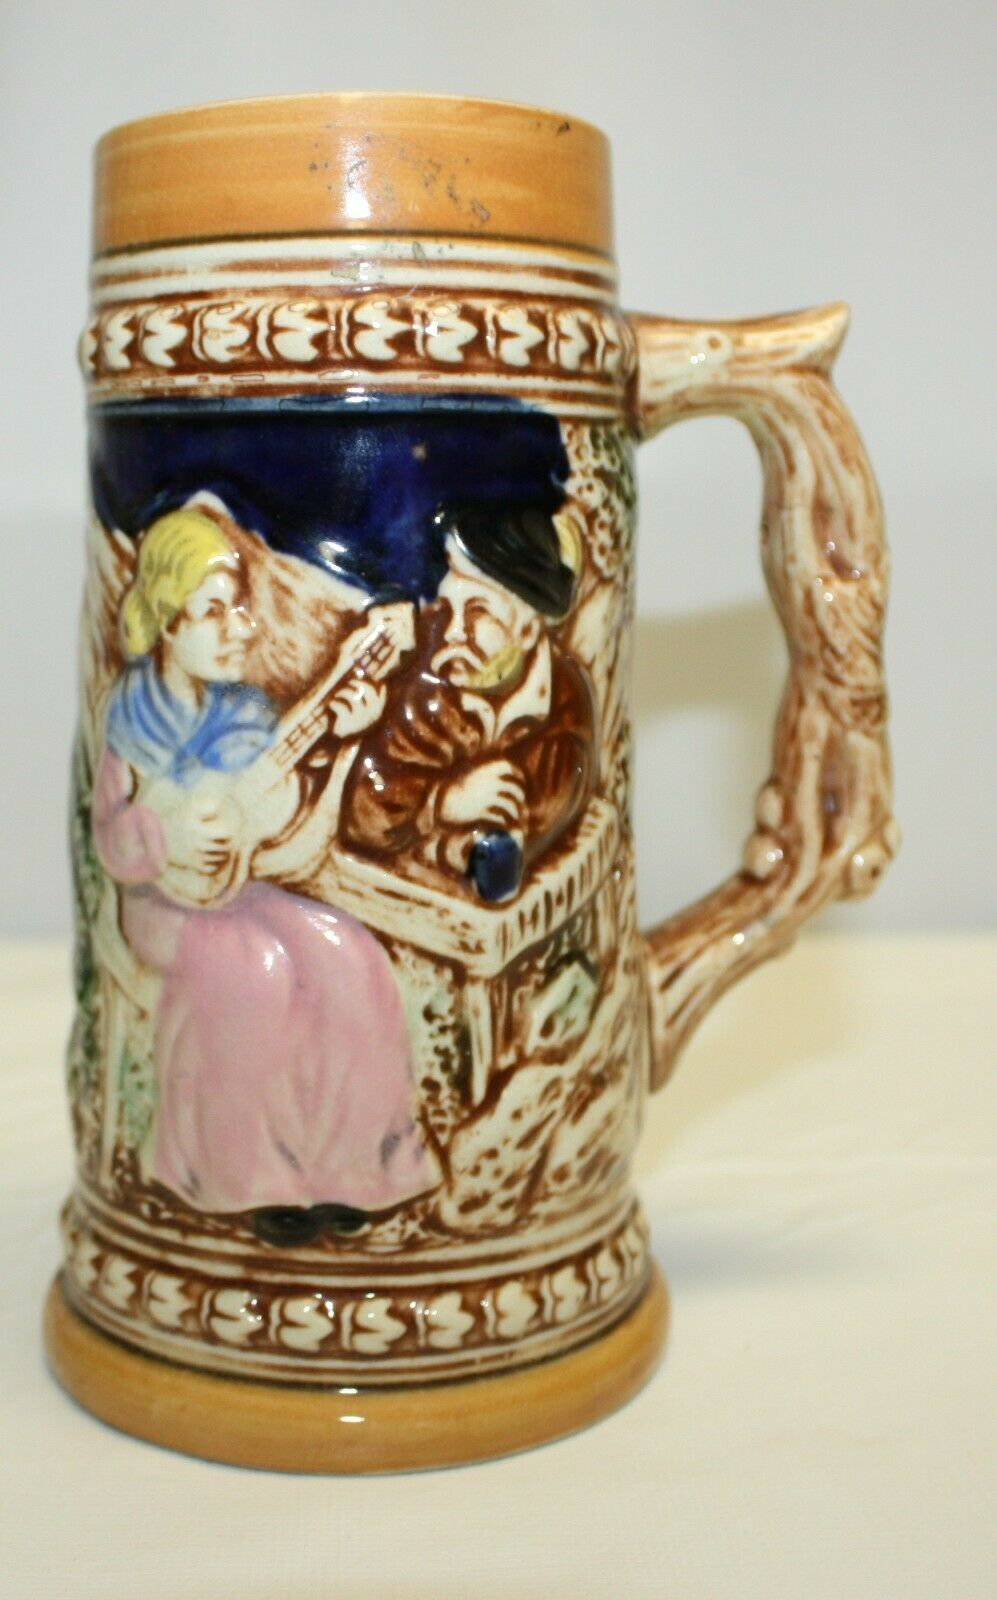 Primary image for Vintage Ceramic Sculpted Stein - German Style Design Made in Japan